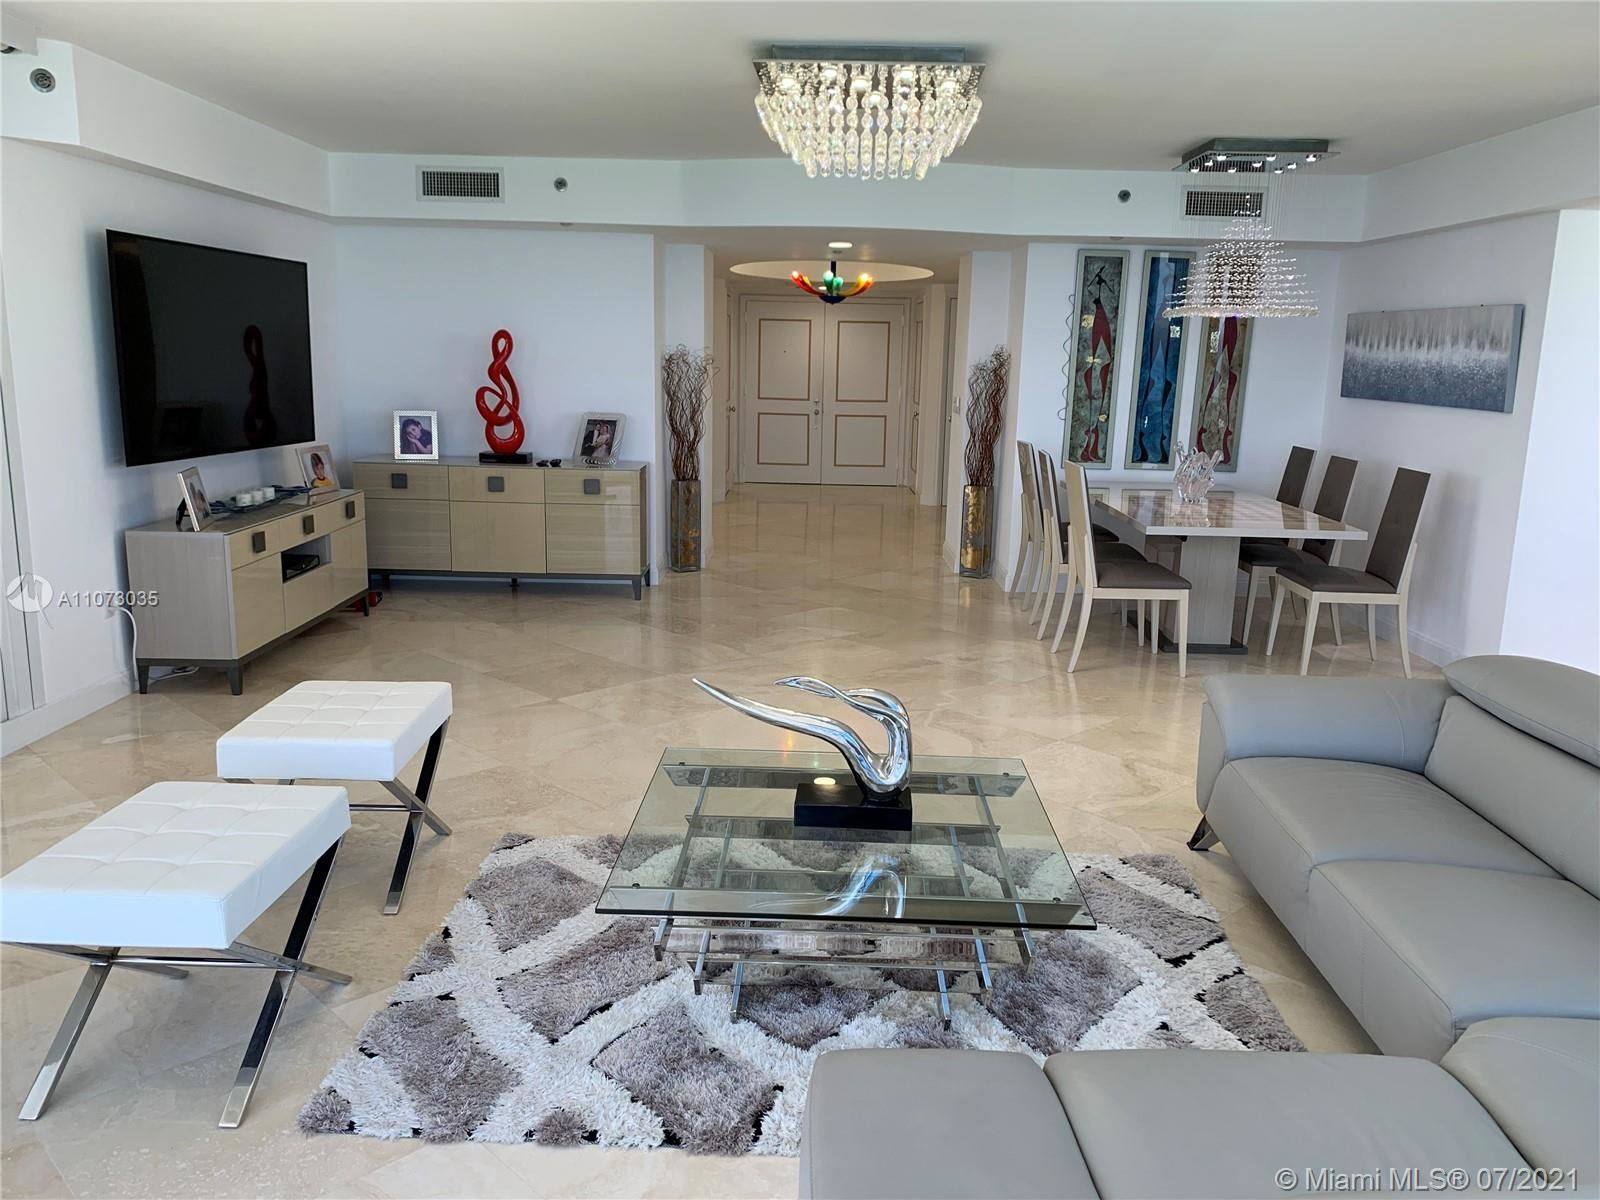 19111 Collins Ave #1801, Sunny Isles, FL 33160 - #: A11073035